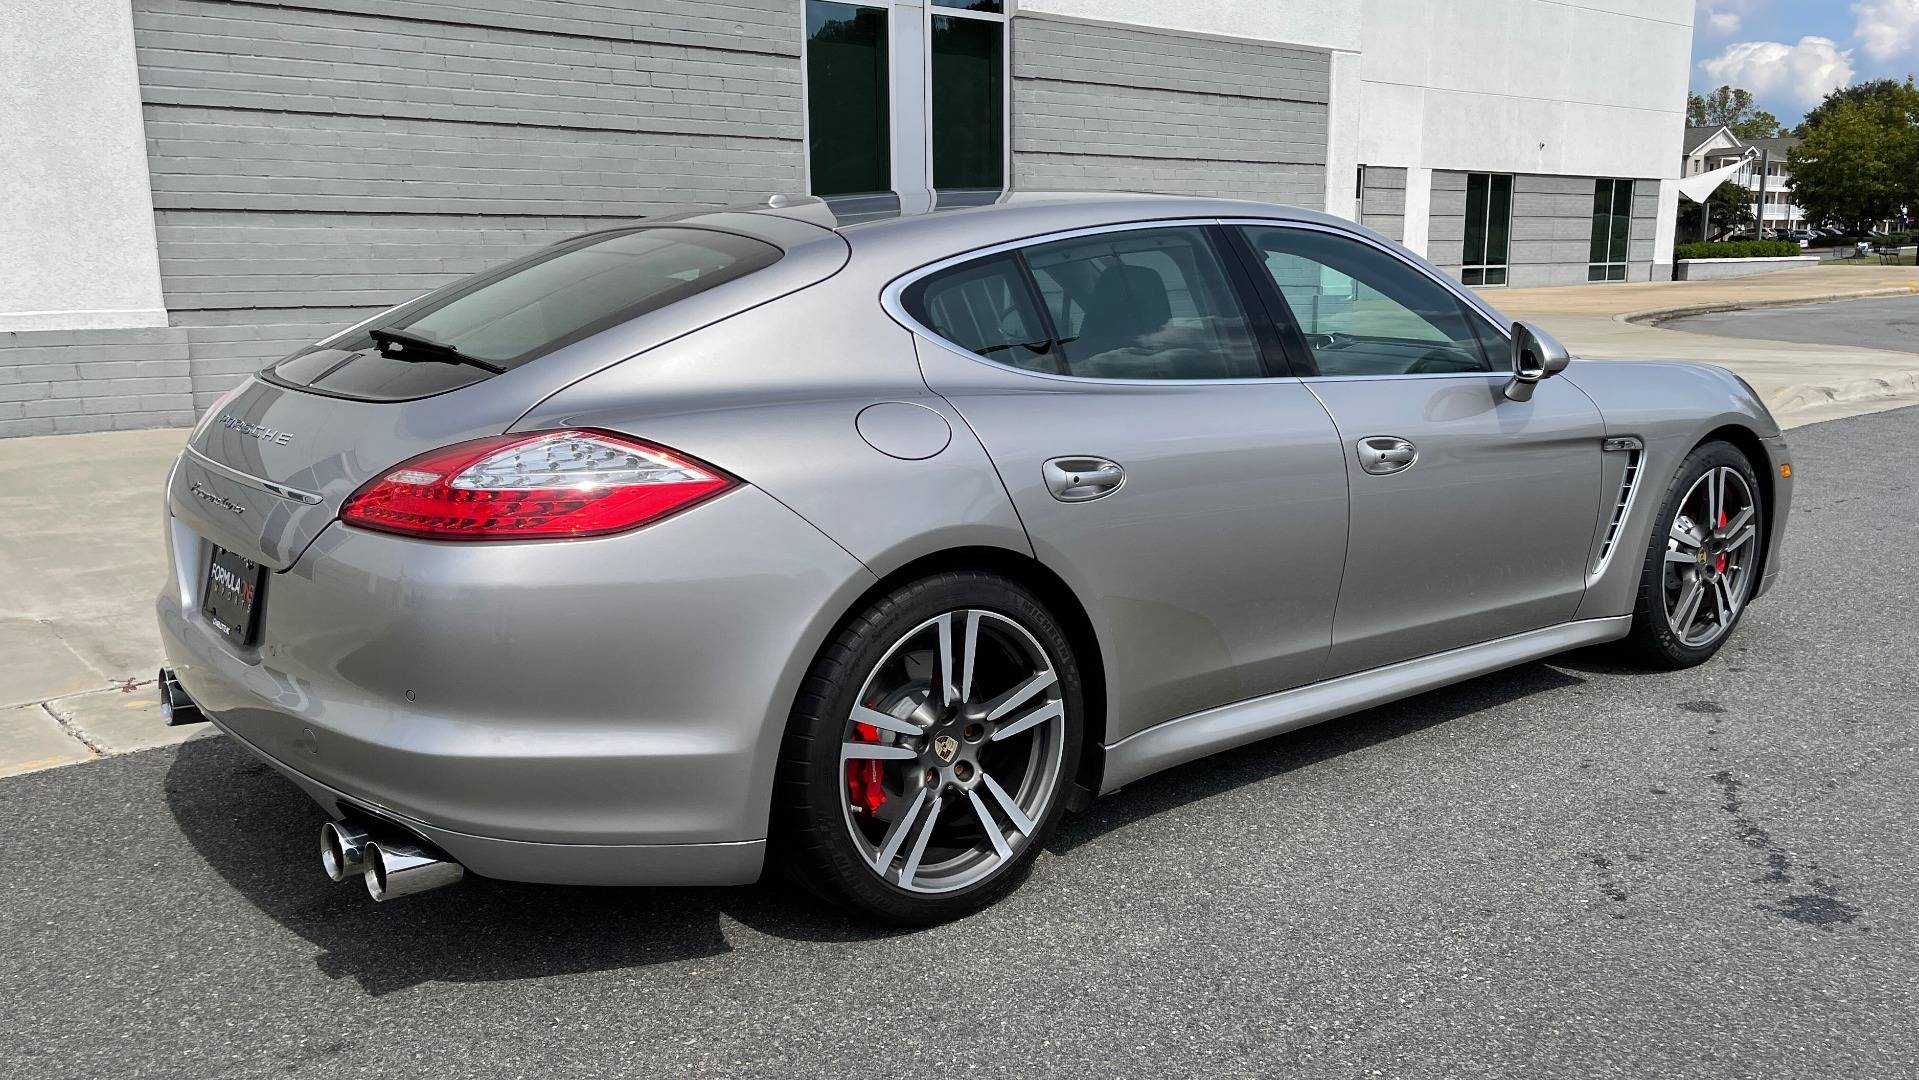 Used 2010 Porsche PANAMERA 4DR HB TURBO / SPORT CHRONO / BOSE / AUTO CLIMATE CONTROL for sale $42,124 at Formula Imports in Charlotte NC 28227 2